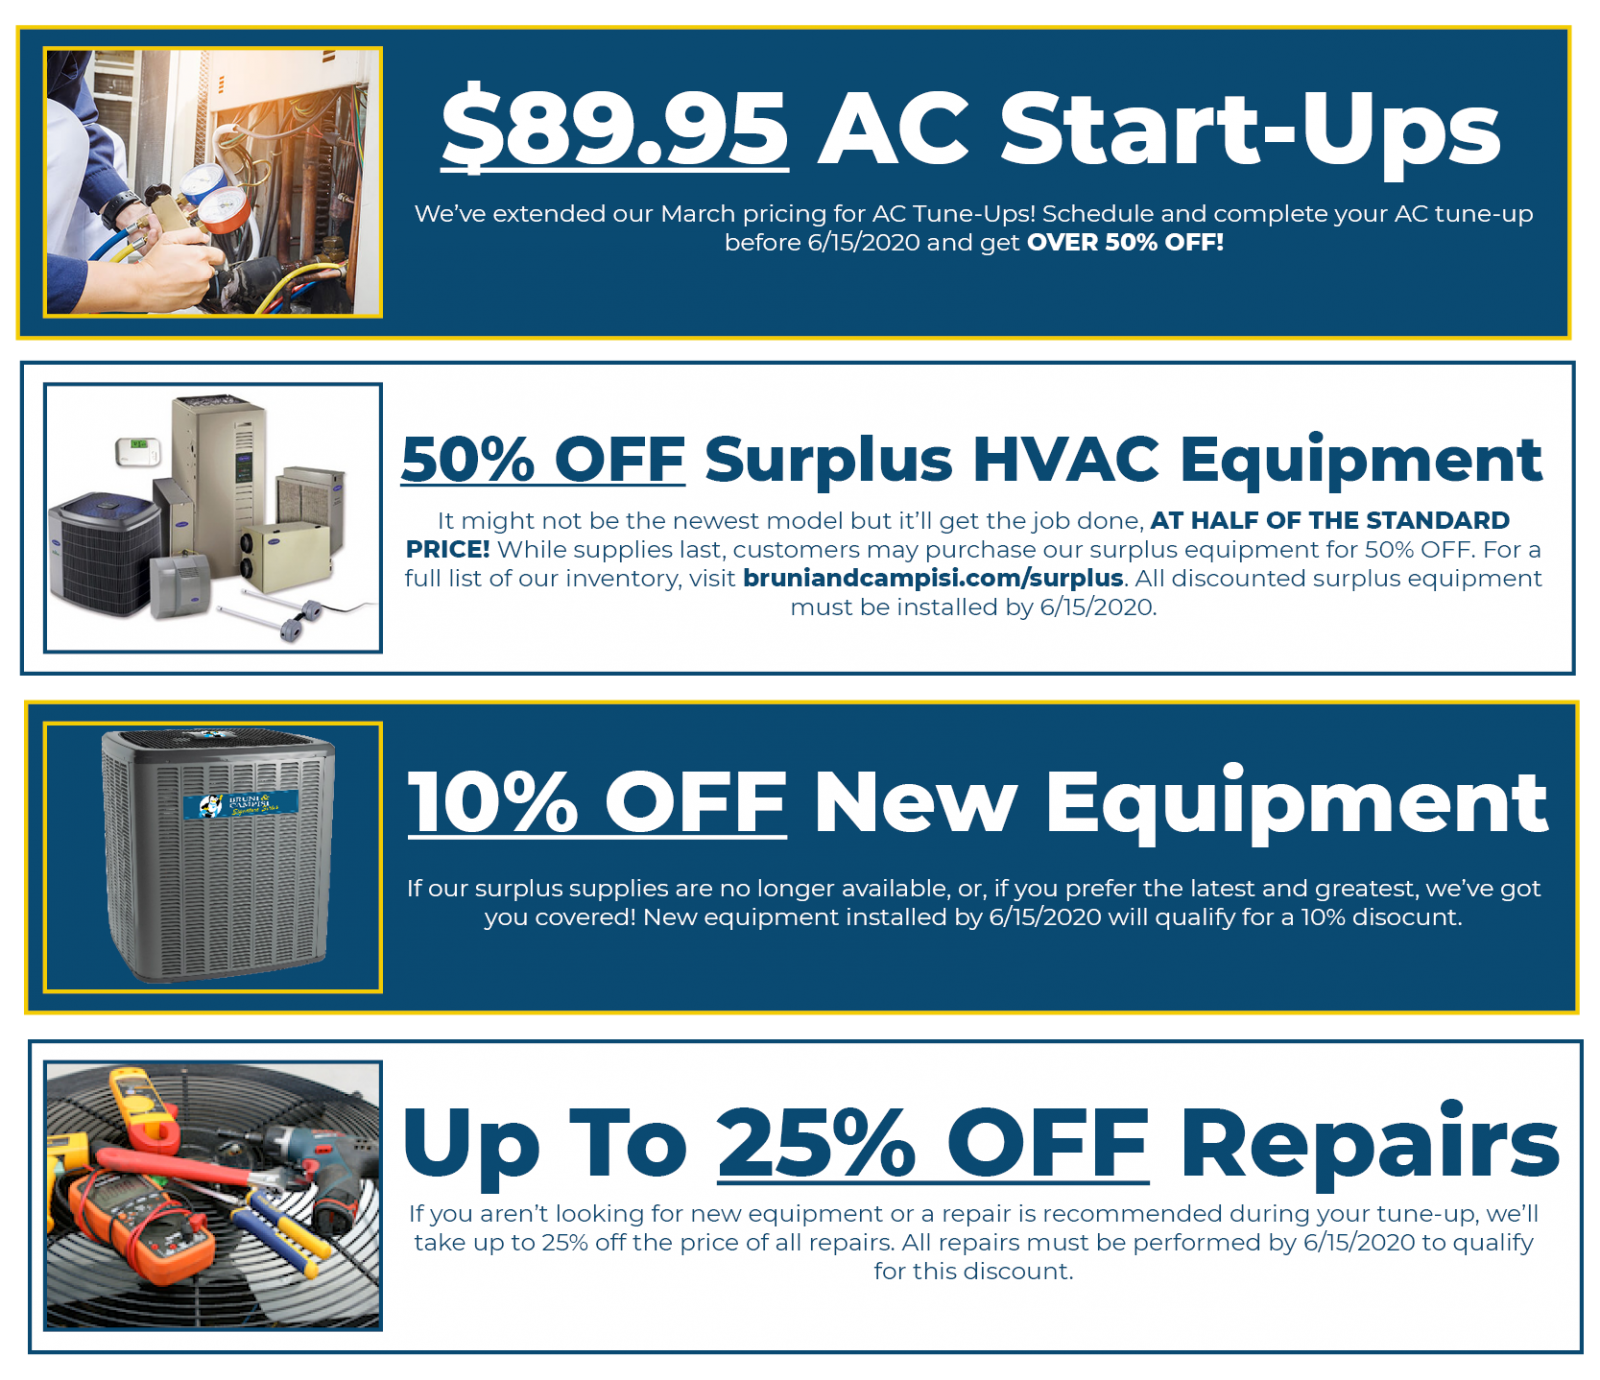 special offers on repairs and new HVAC equipment